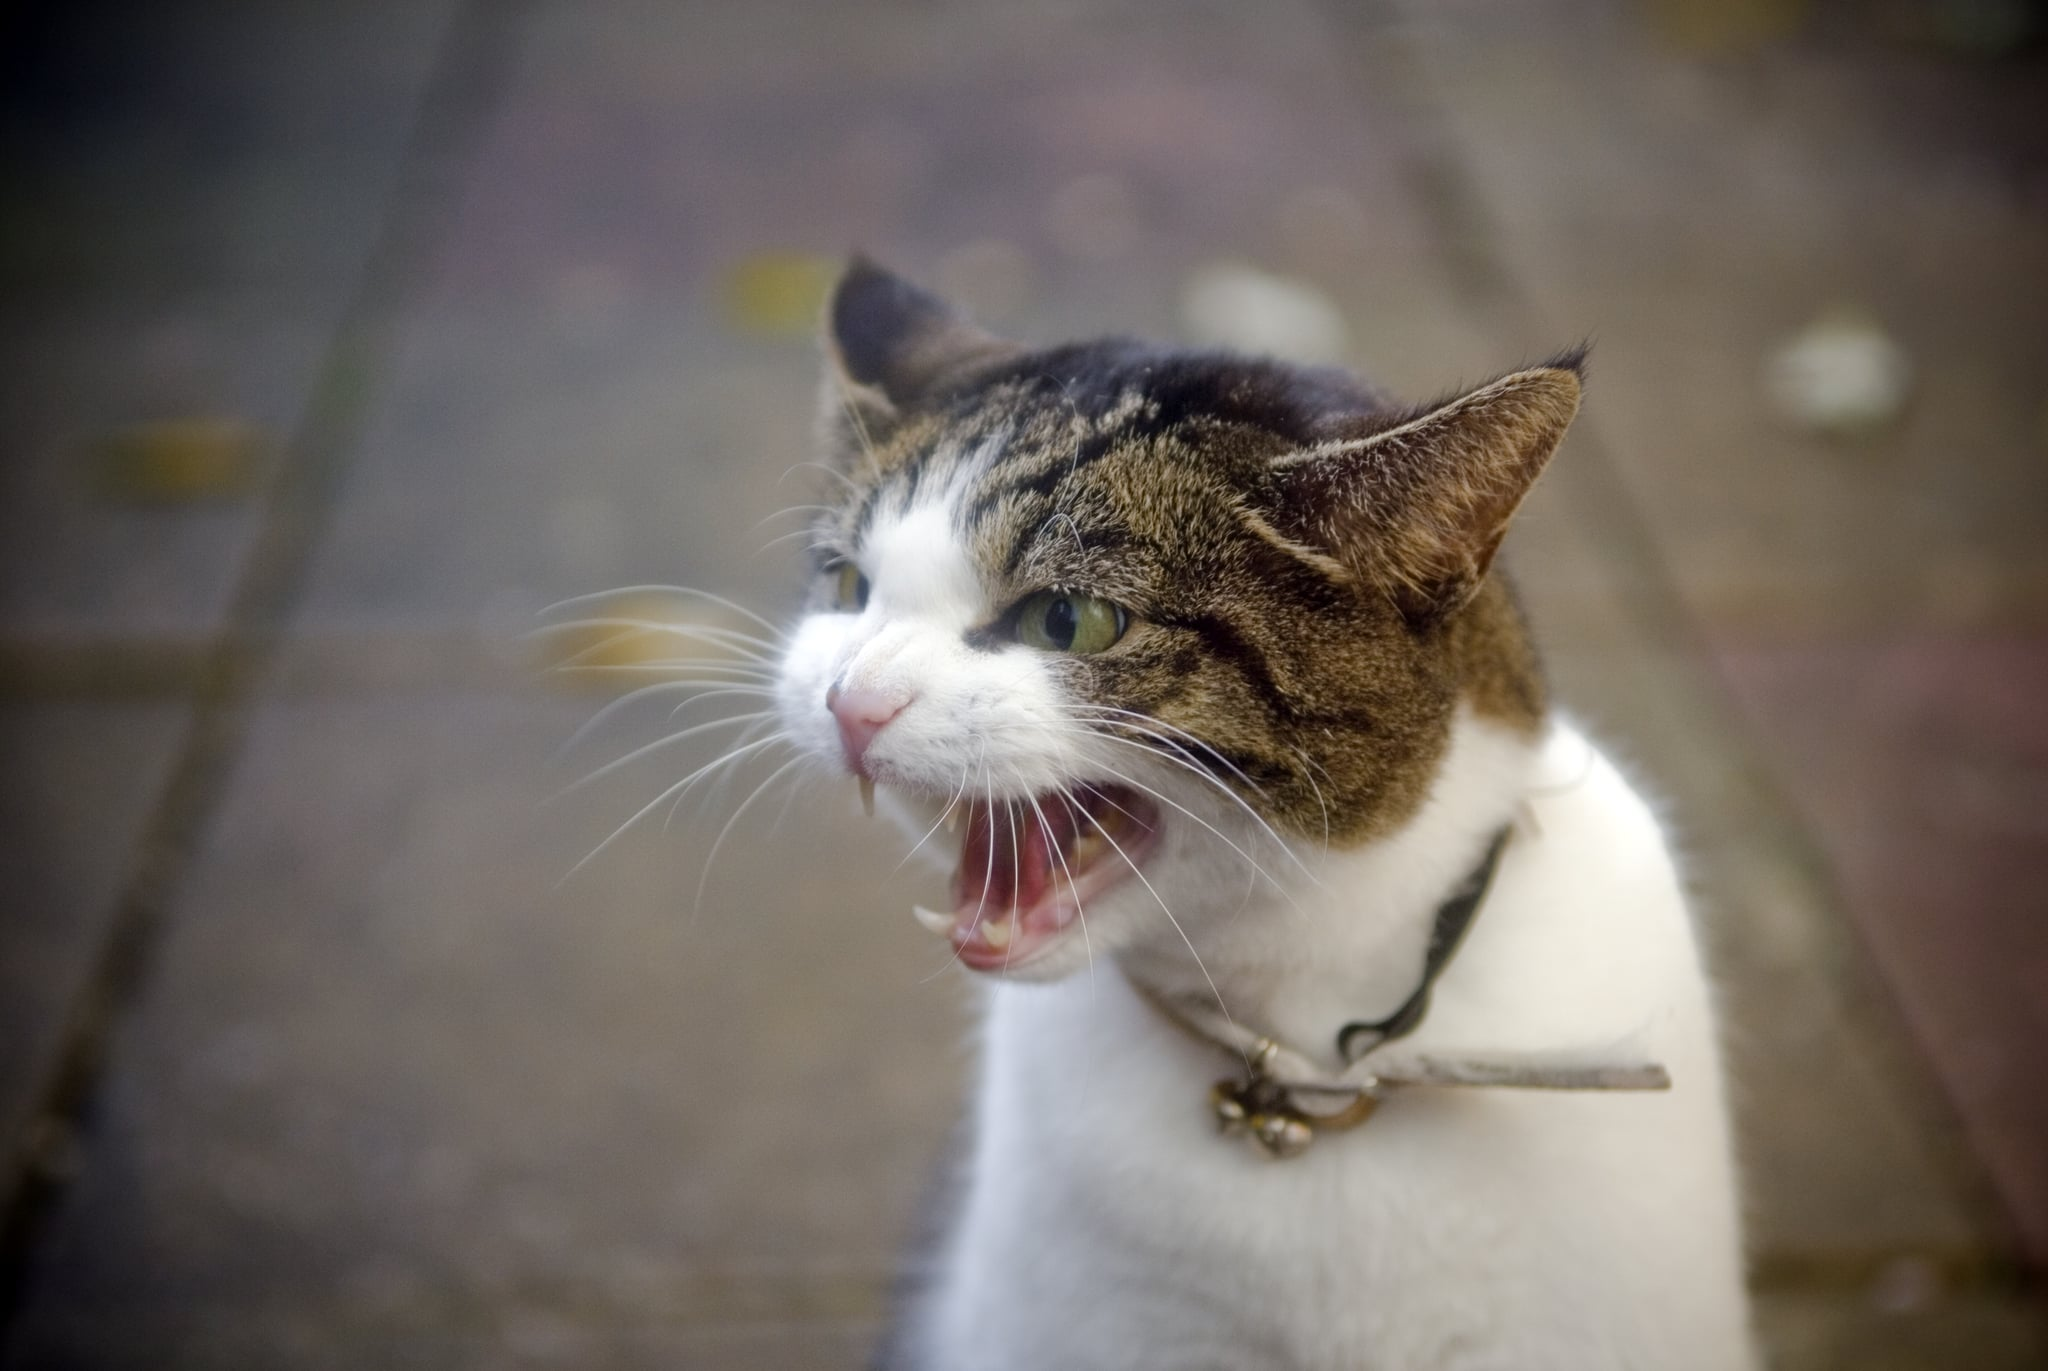 An angry domestic tabby cat hisses, showing her teeth.